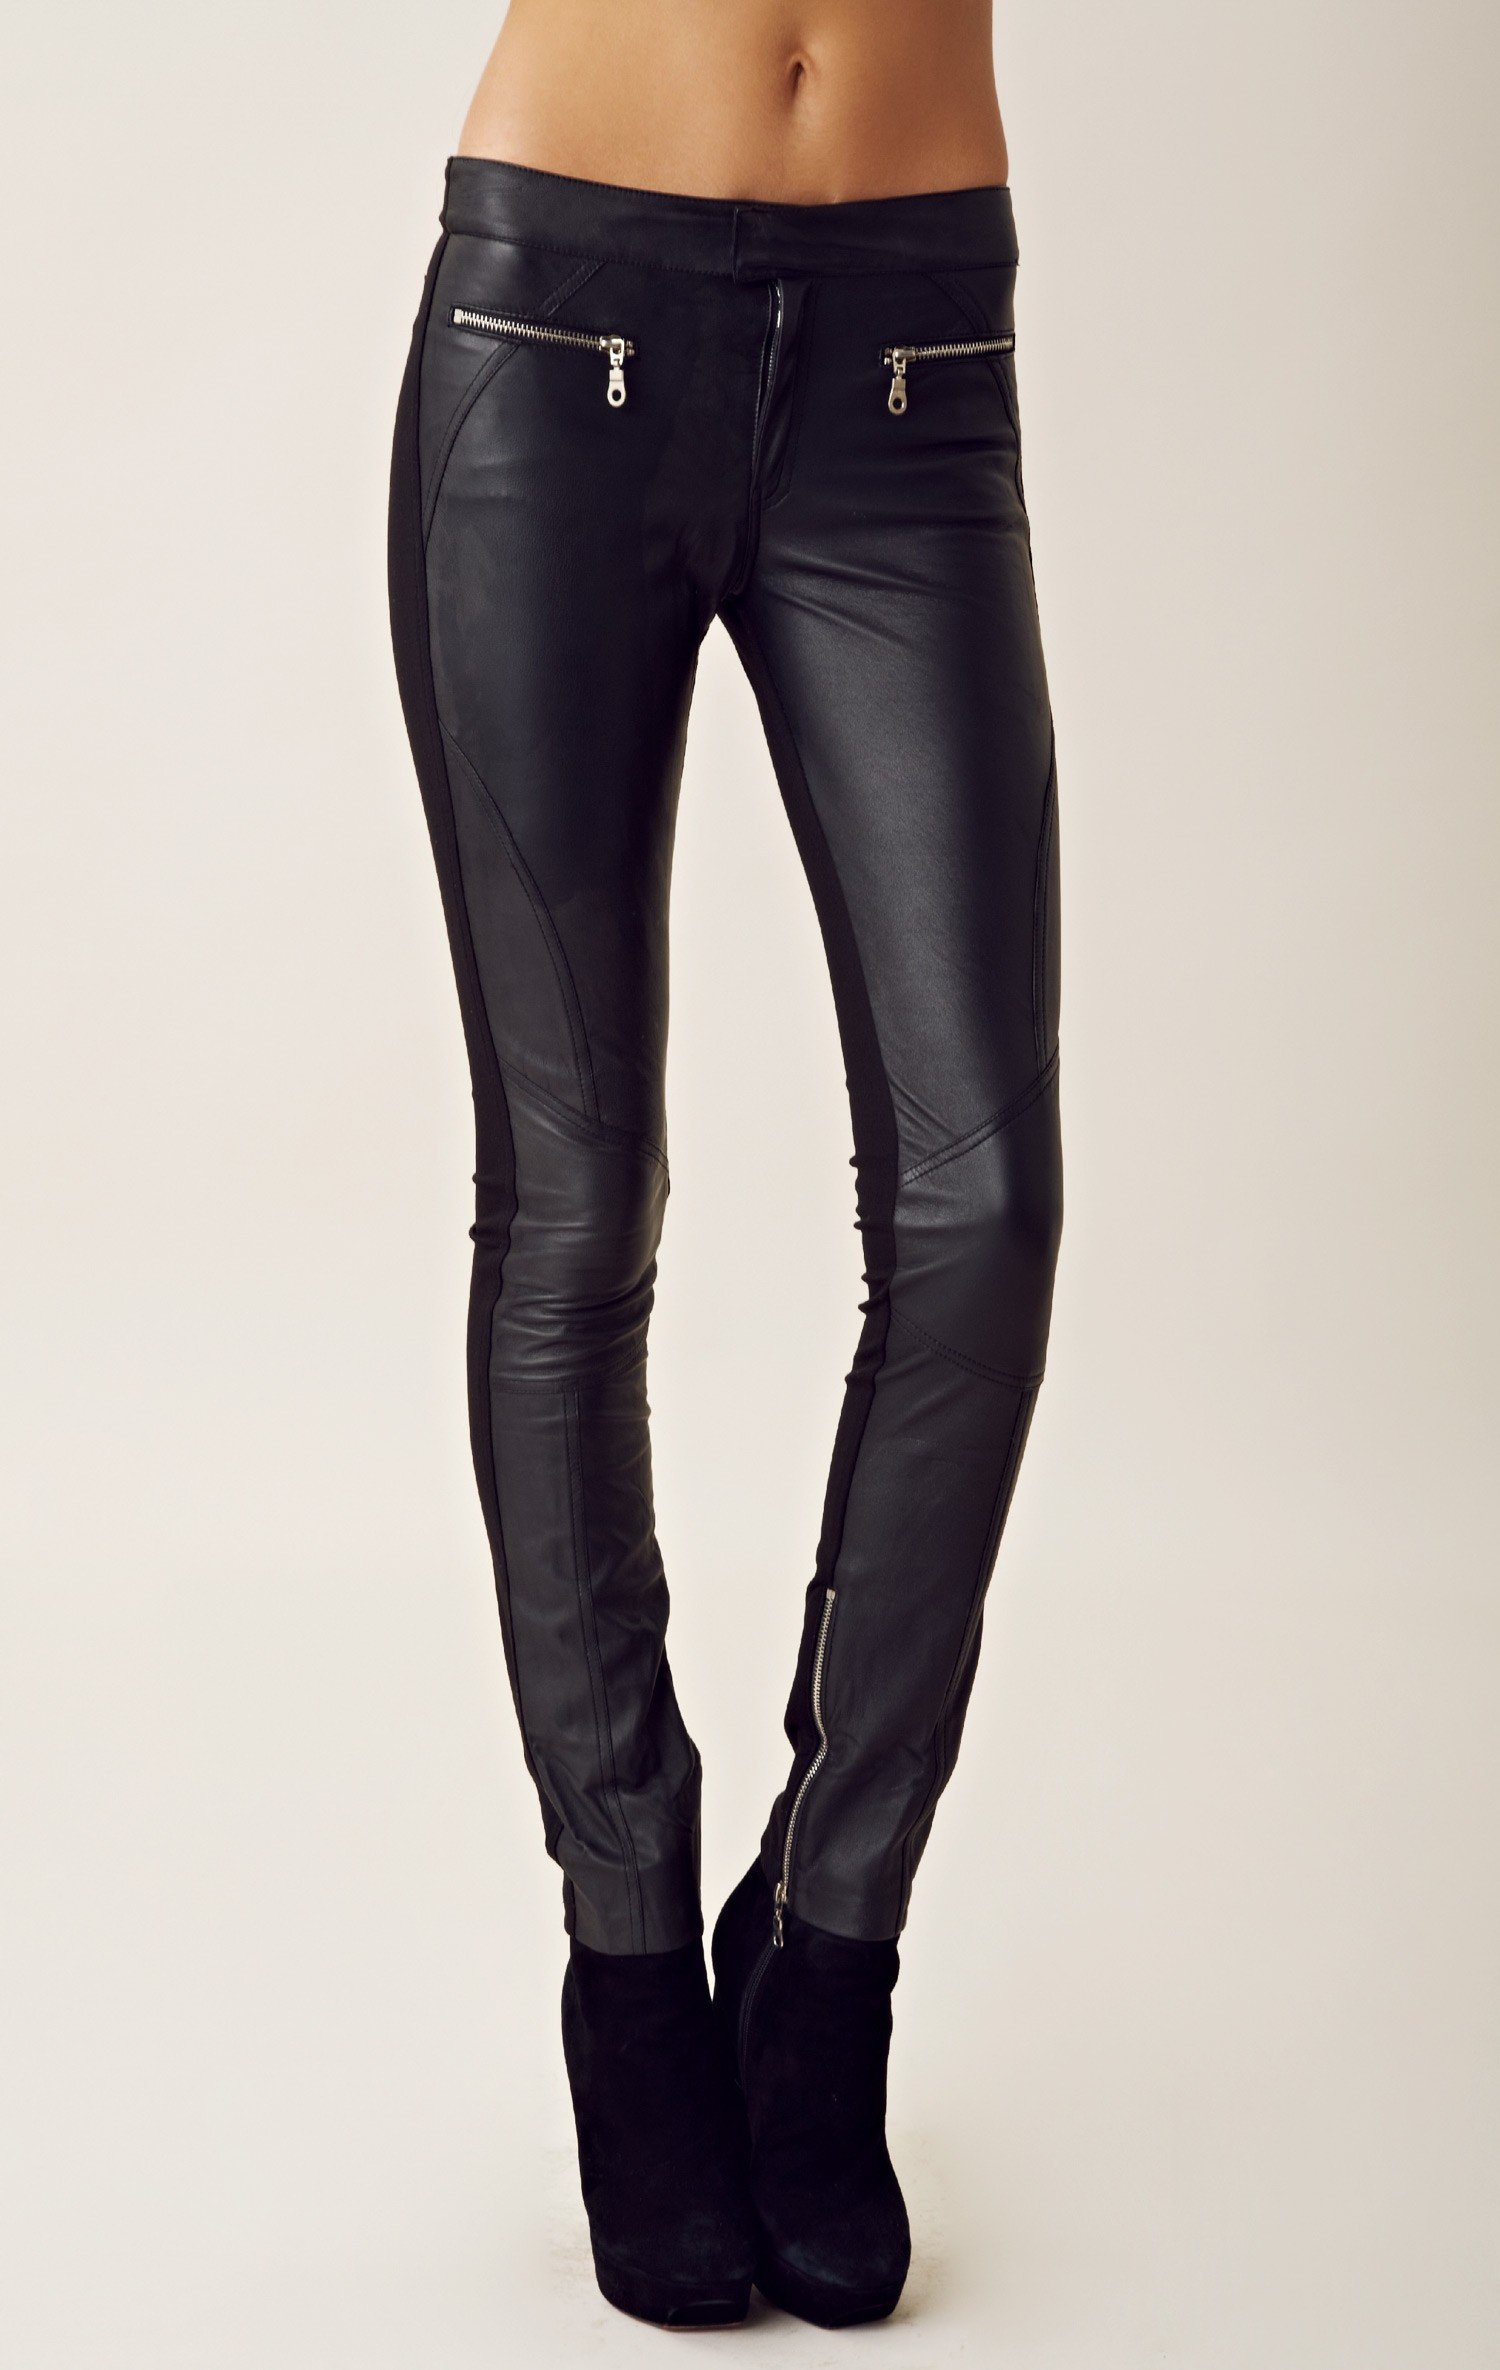 Simple 2014 NEW Winter Pu Leather Pants Womens Legging Fashion Pants Pencil